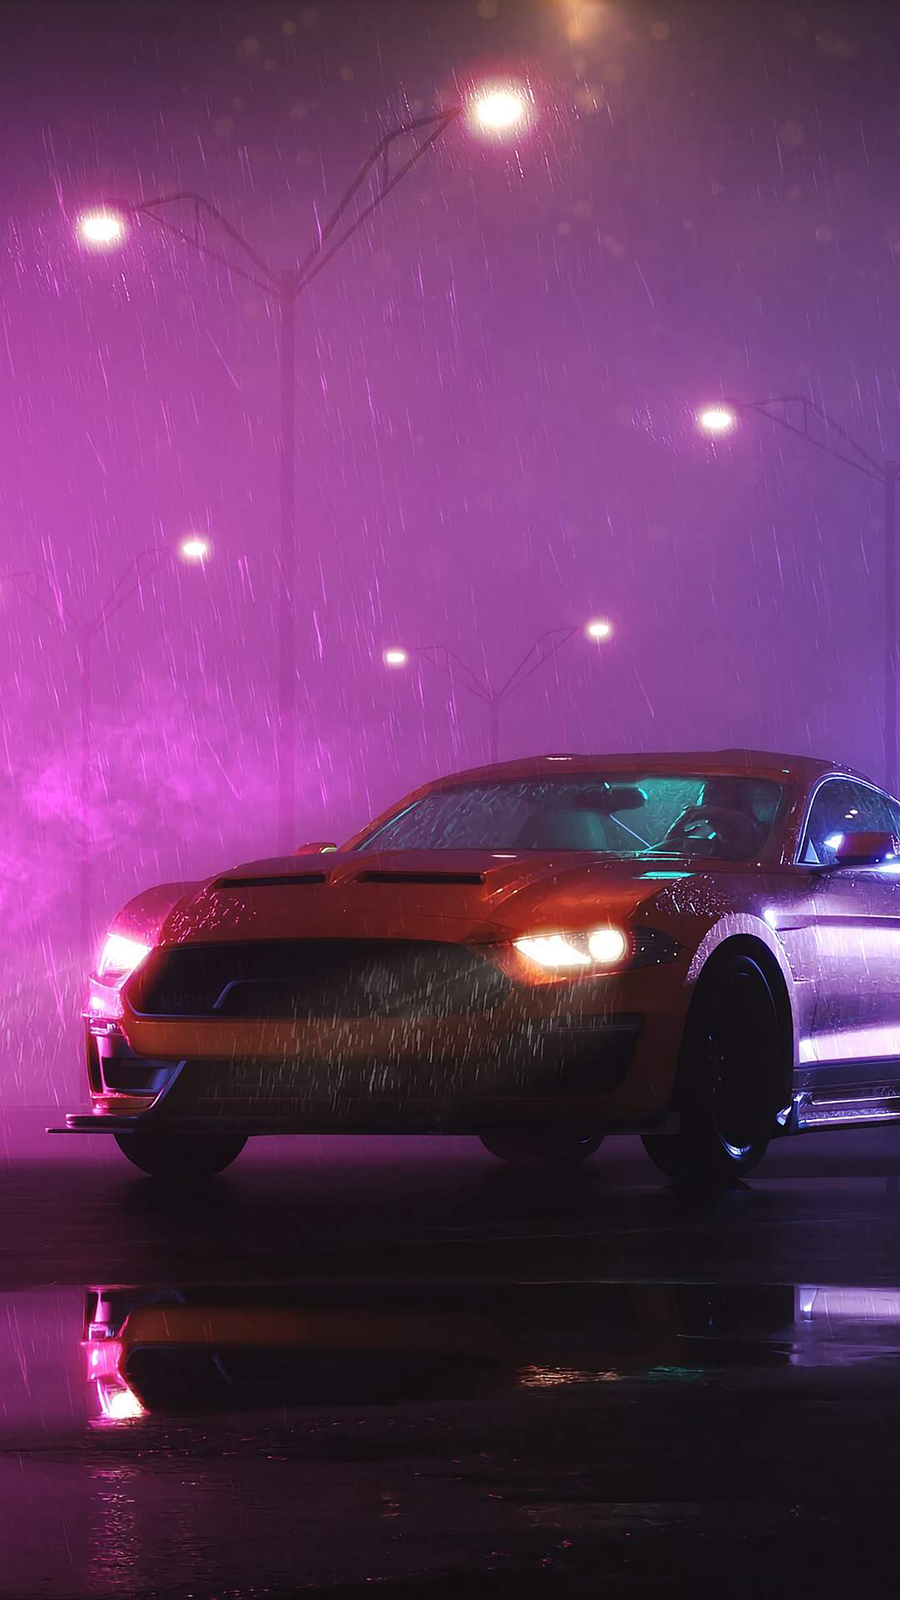 Best Ford Car Wallpaper – Best HD Wallpapers Download for Your Device